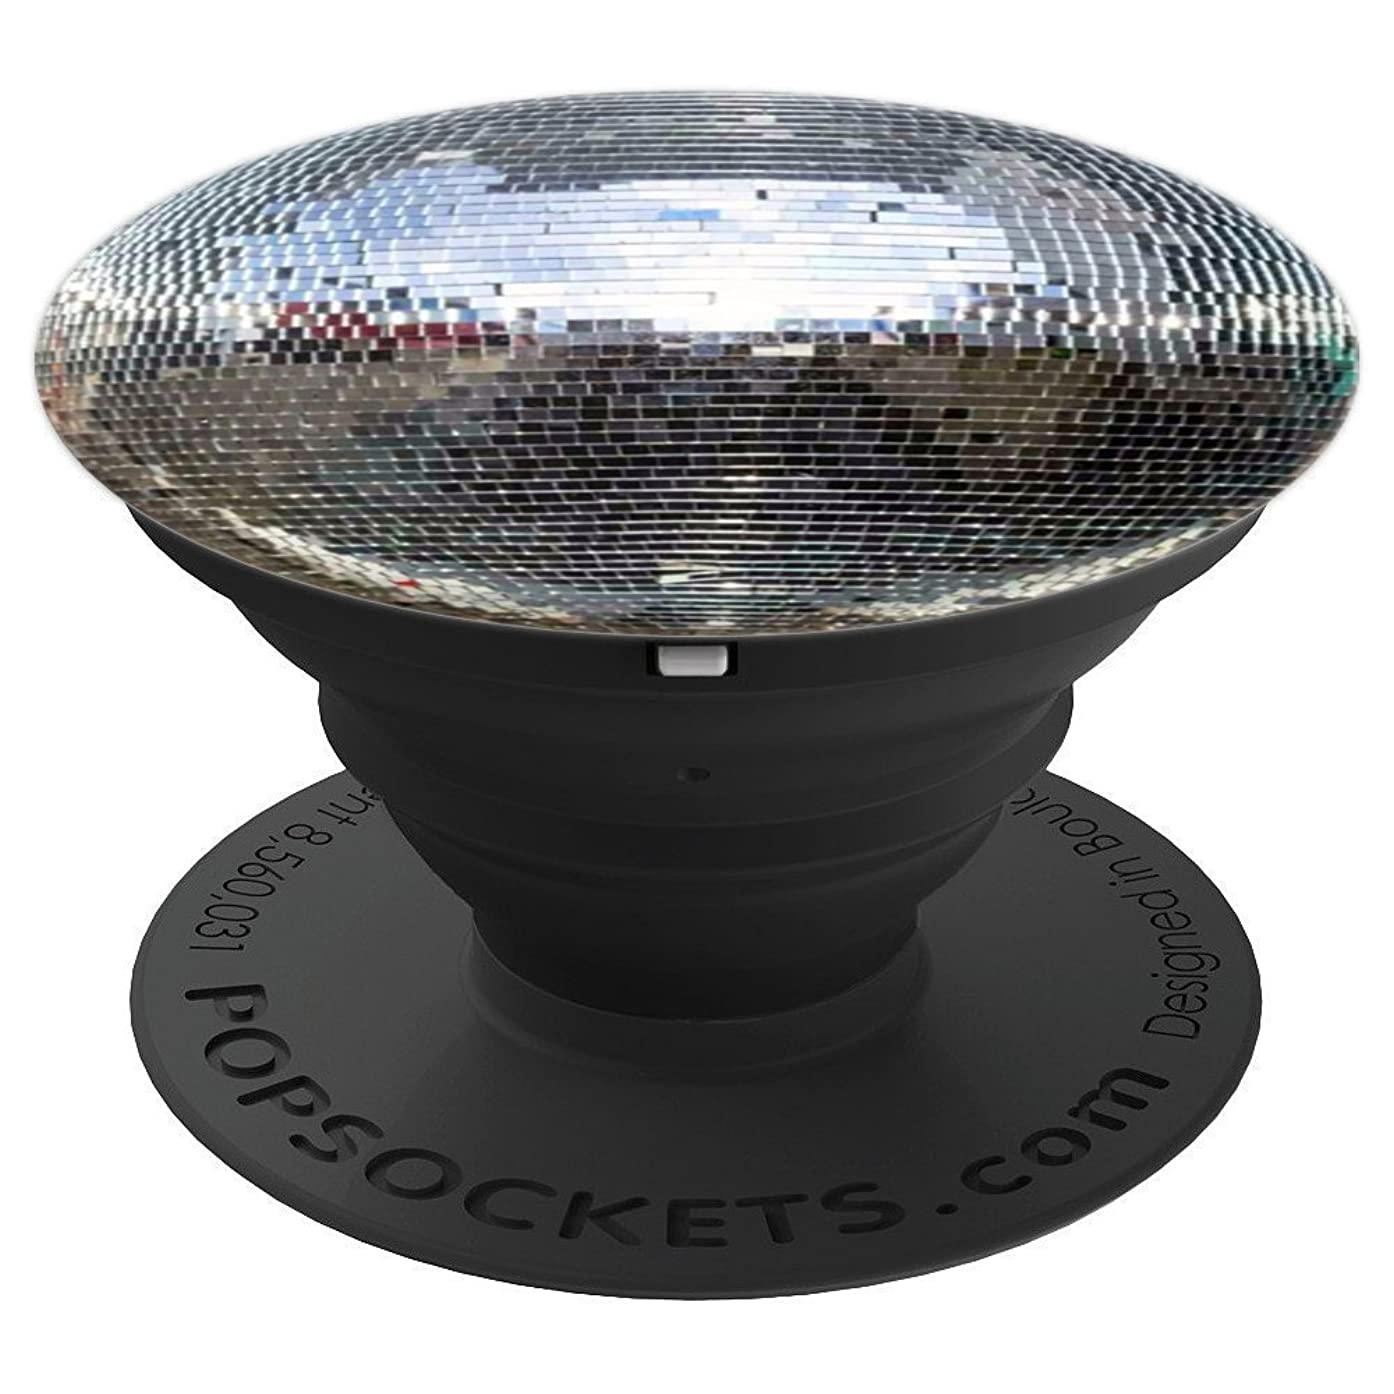 Girls Disco Ball 70s Spectacular - PopSockets Grip and Stand for Phones and Tablets